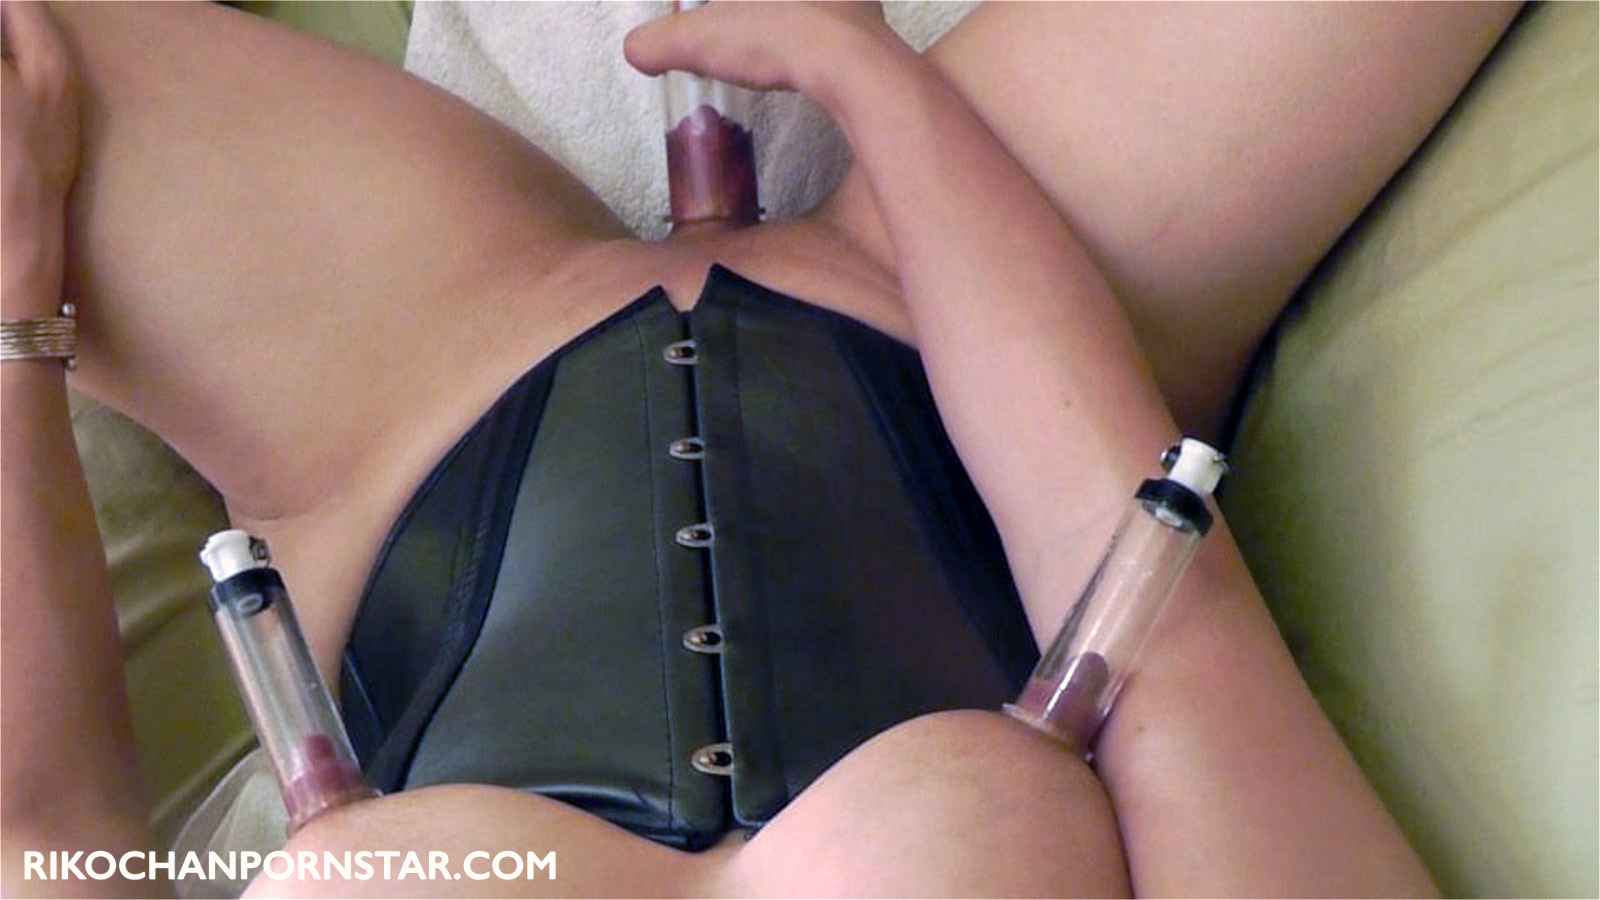 that can not domina torture slave theme interesting, will